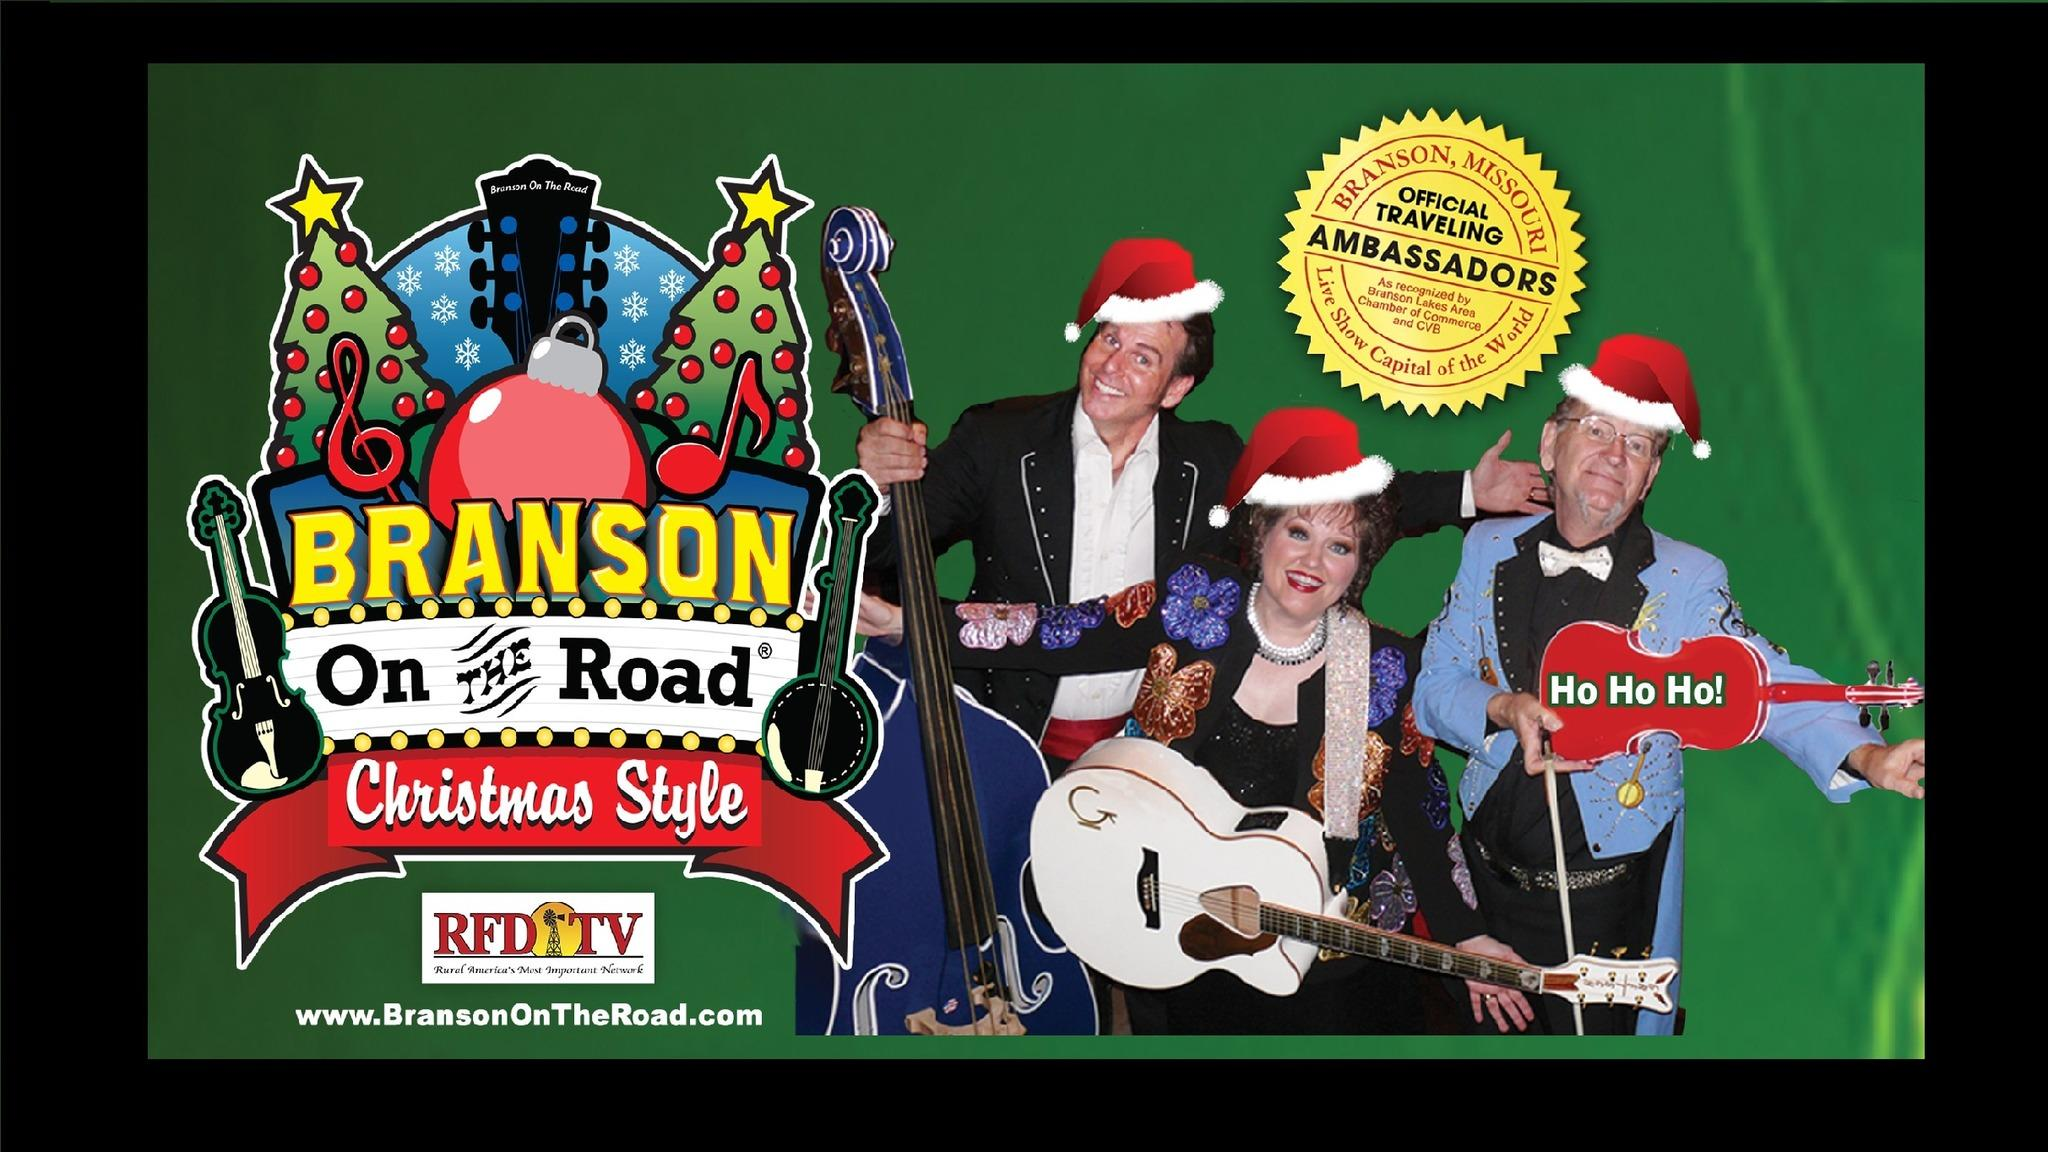 Branson On The Road at Palace Theatre-Greensburg